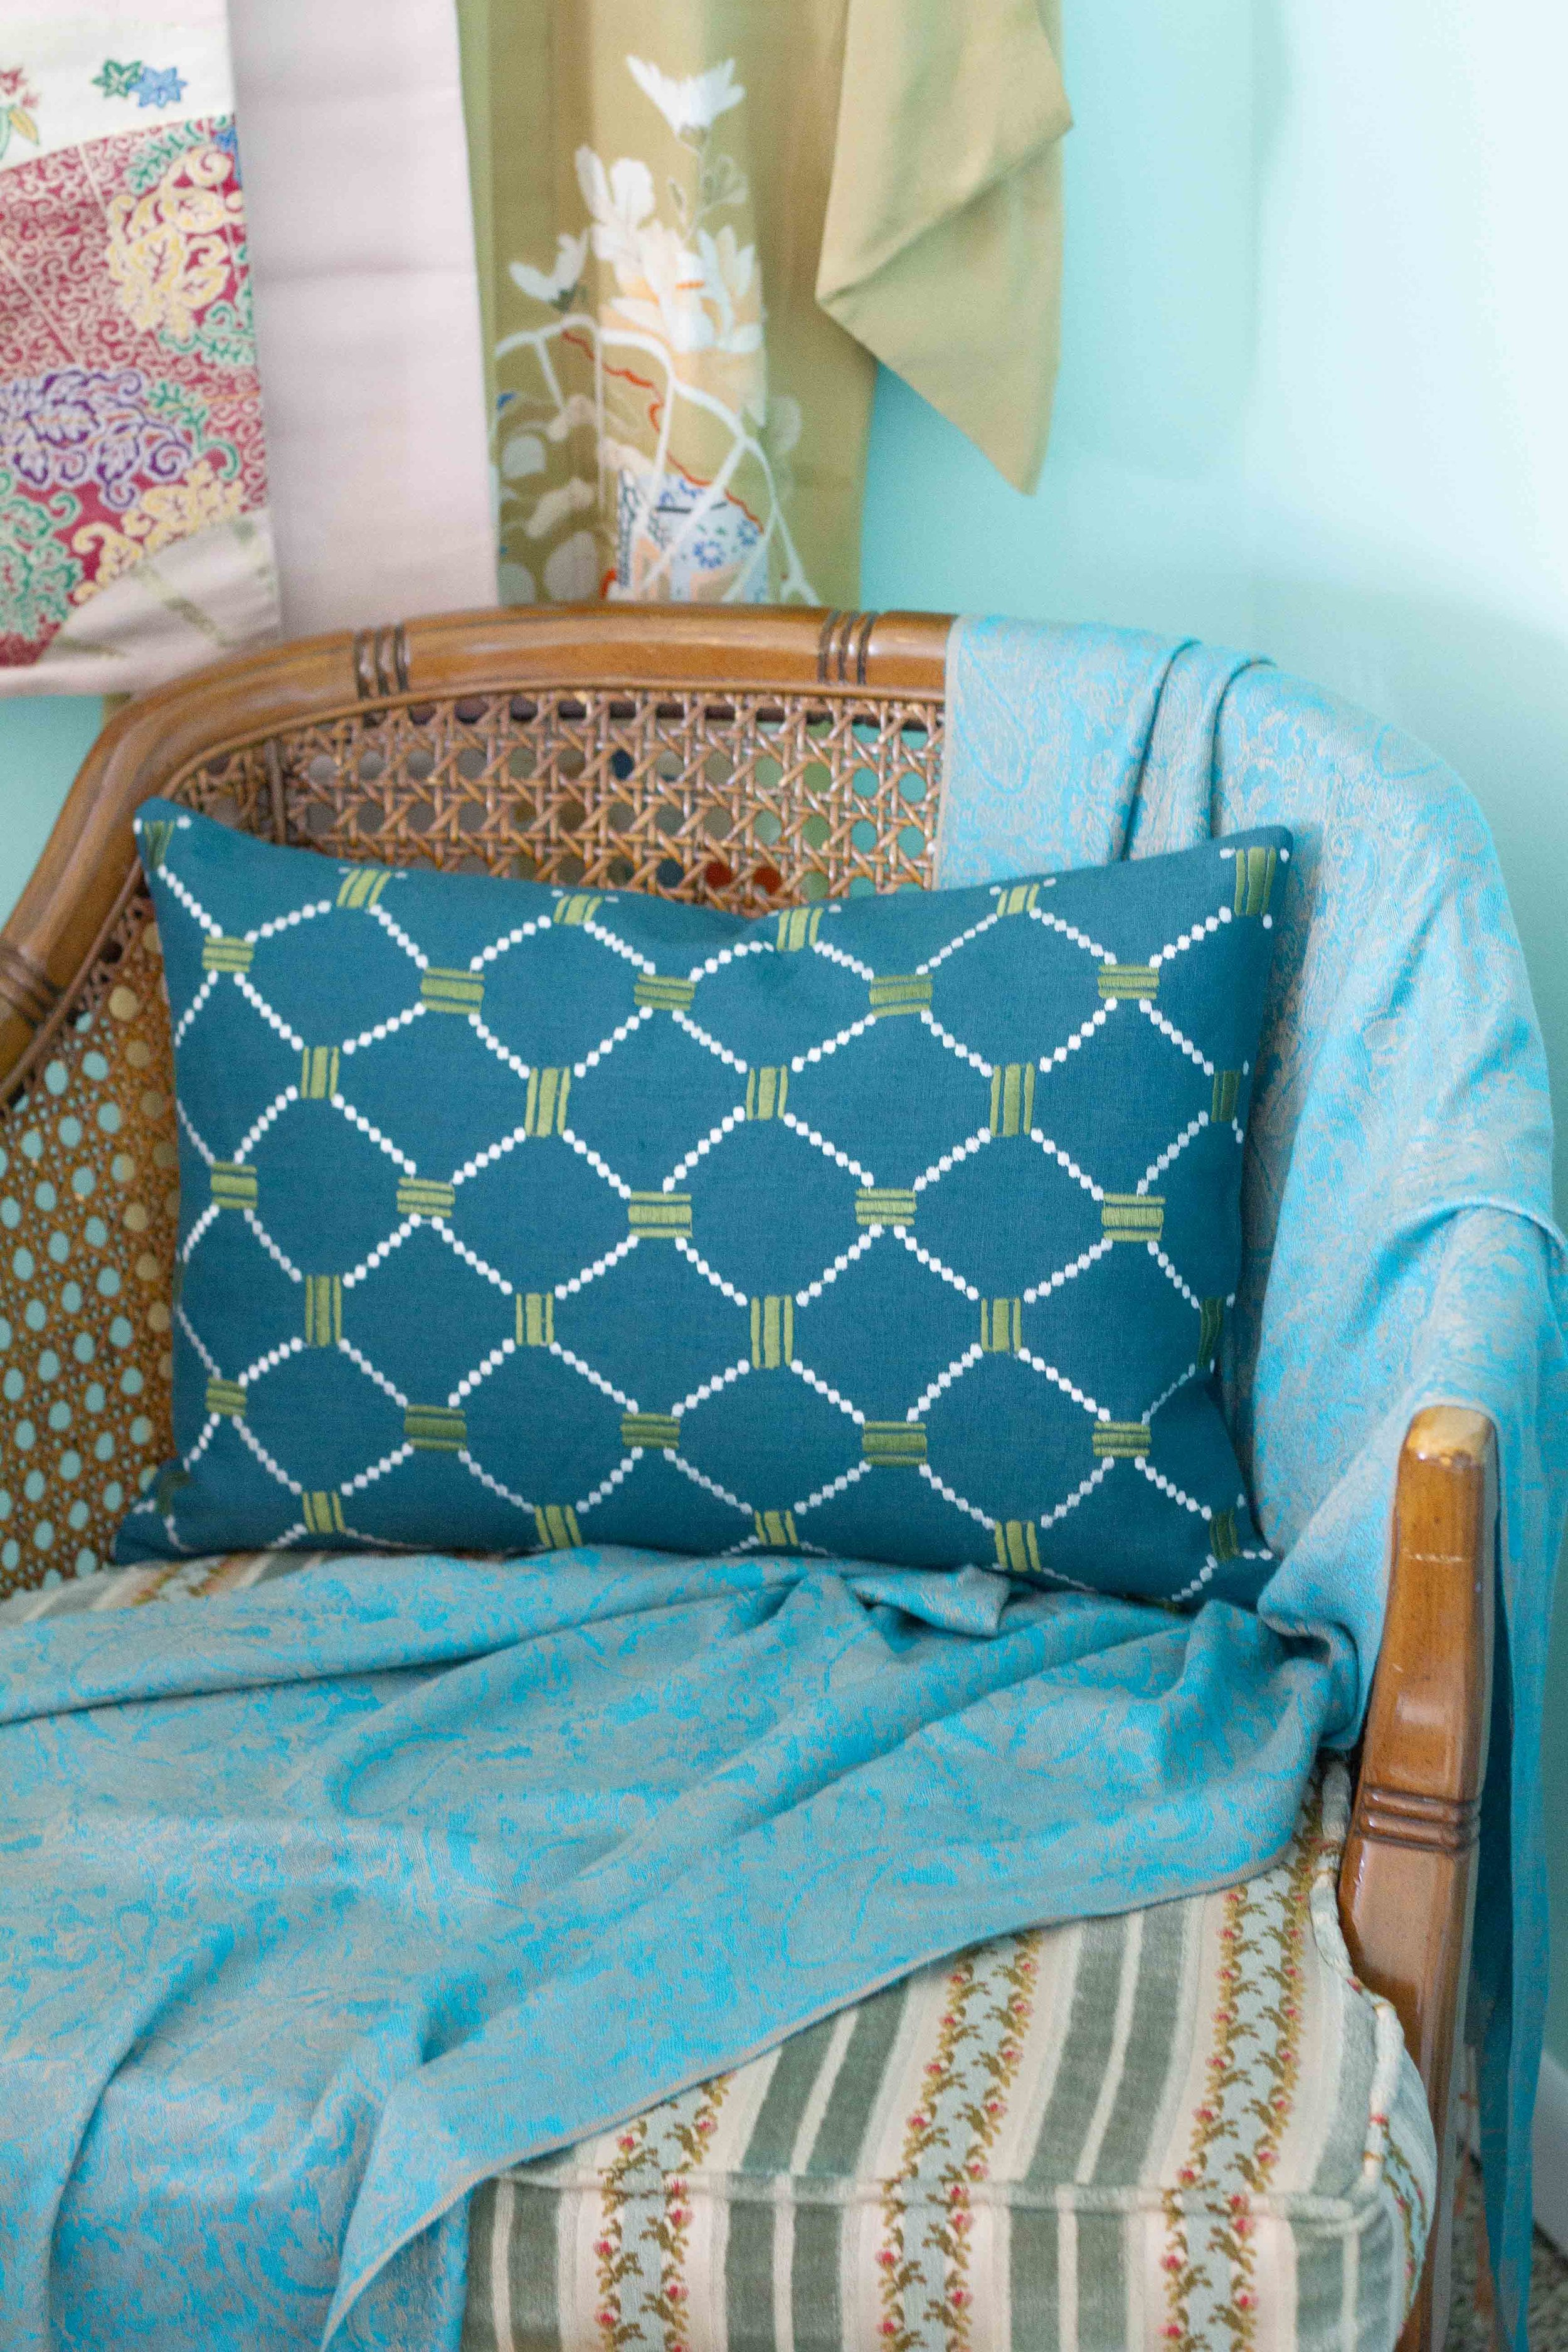 This pillow is the perfect size and shape for this vintage chair.